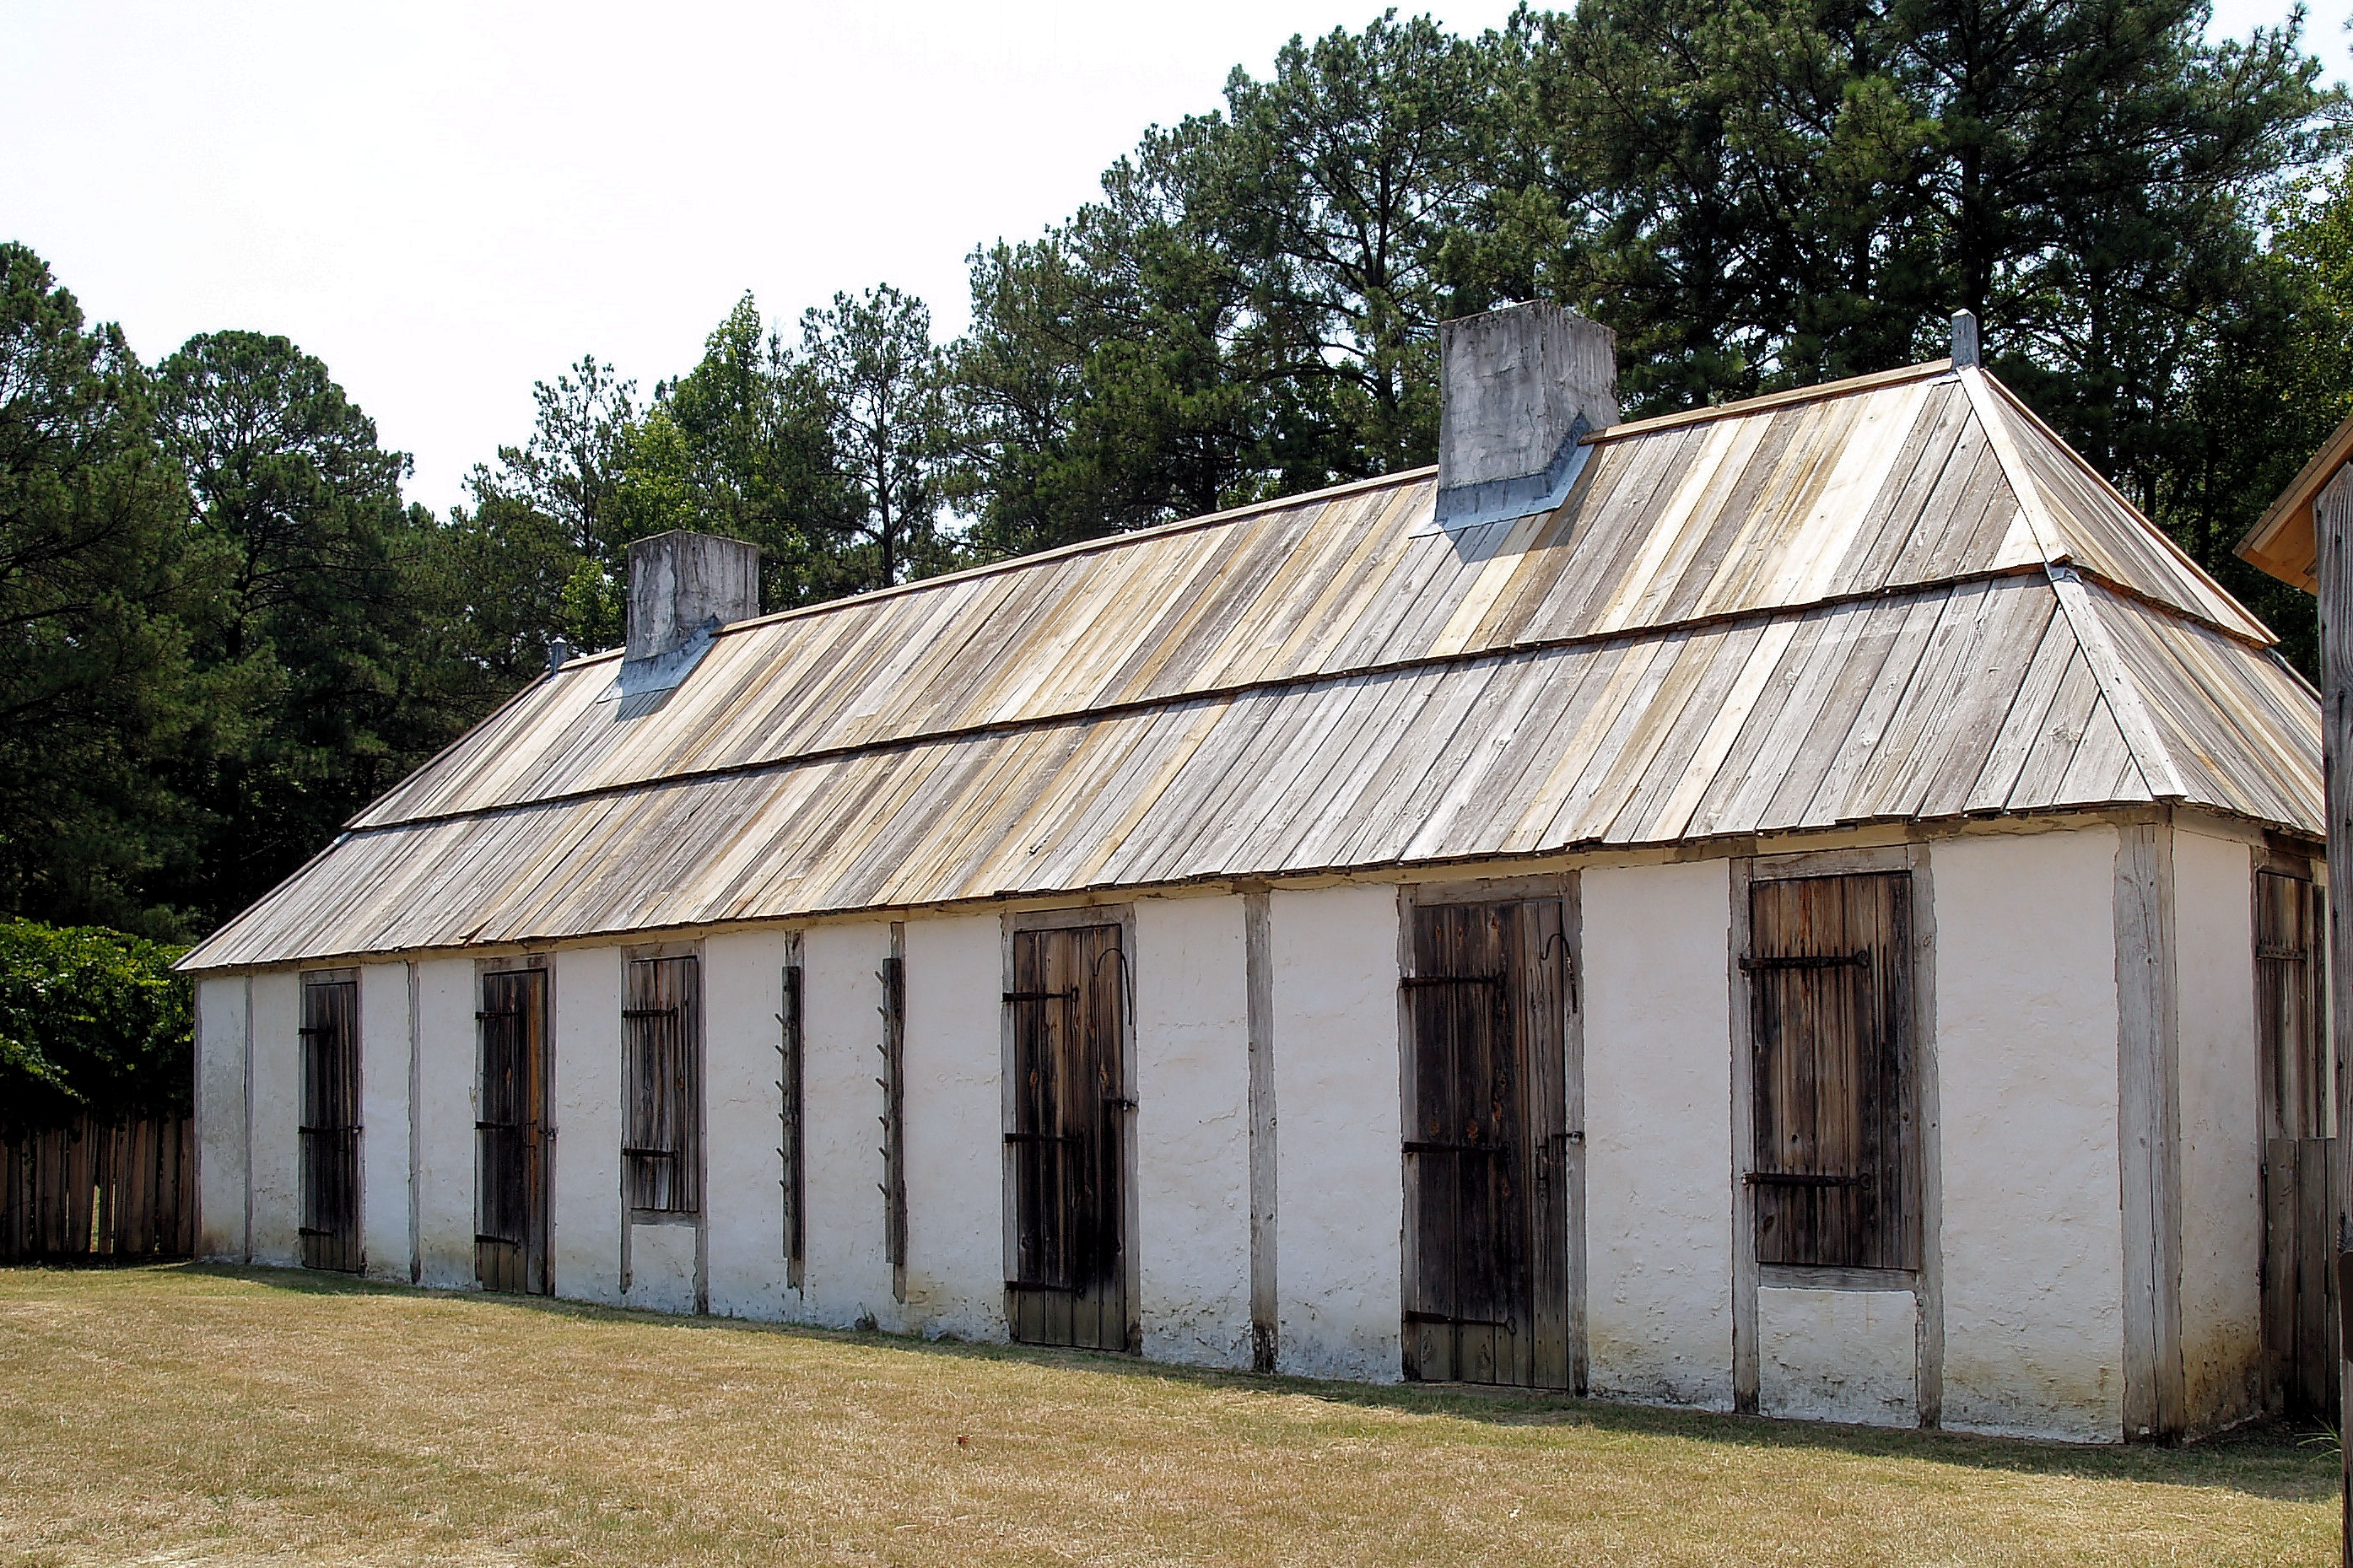 One of the buildings at the recreated Fort Toulouse, which was designated a National Historic Landmark in 1960. The fort is a replica of the one built by the French in 1751.